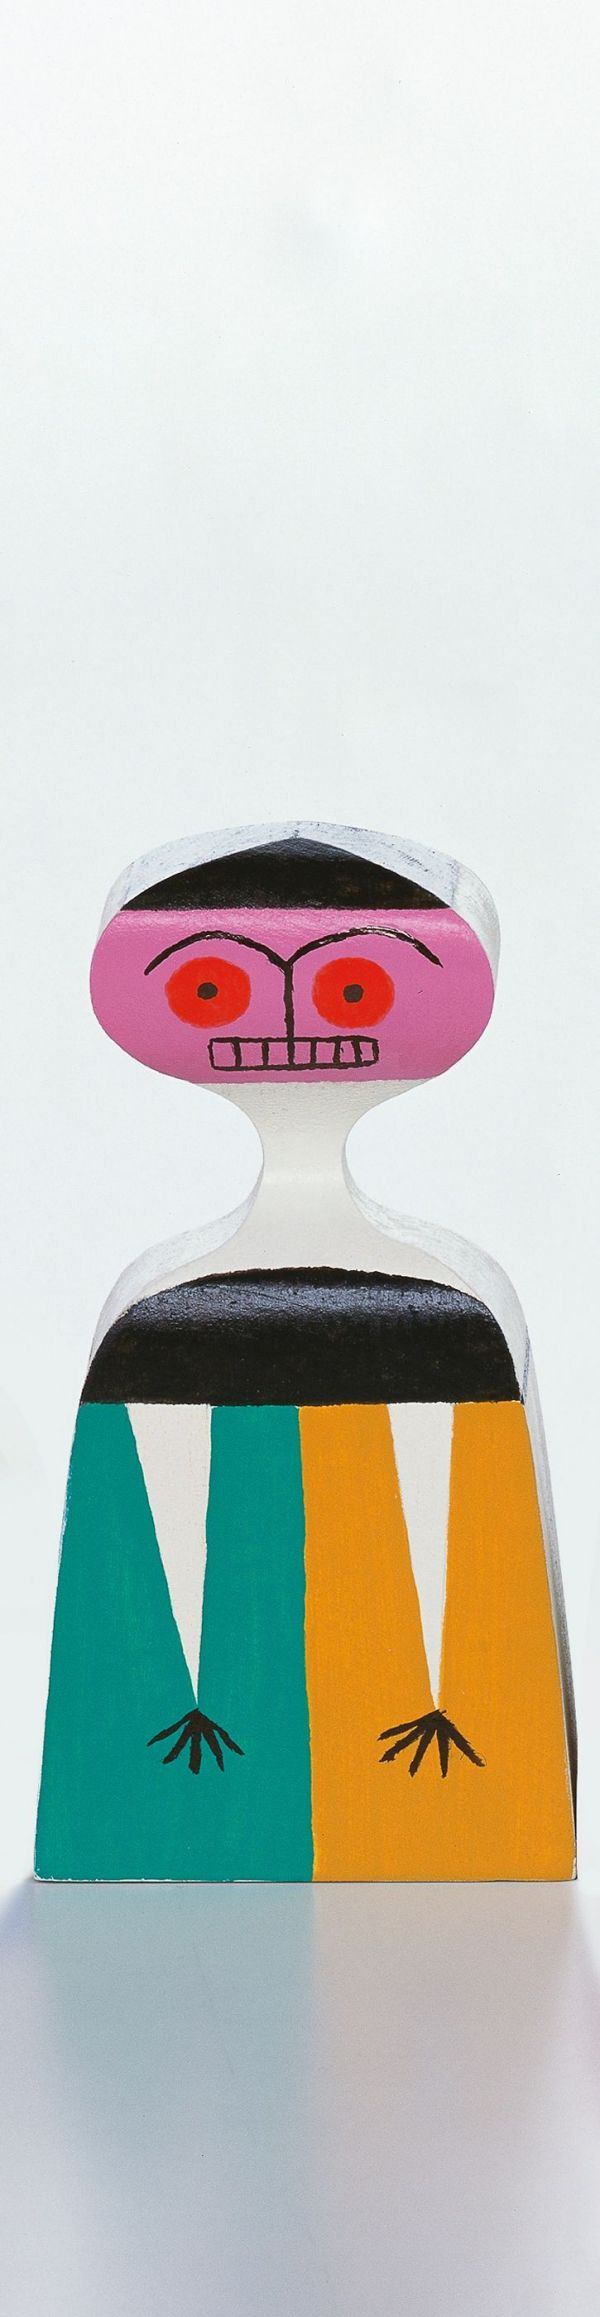 Vitra Wooden Dolls No. 3 kunst